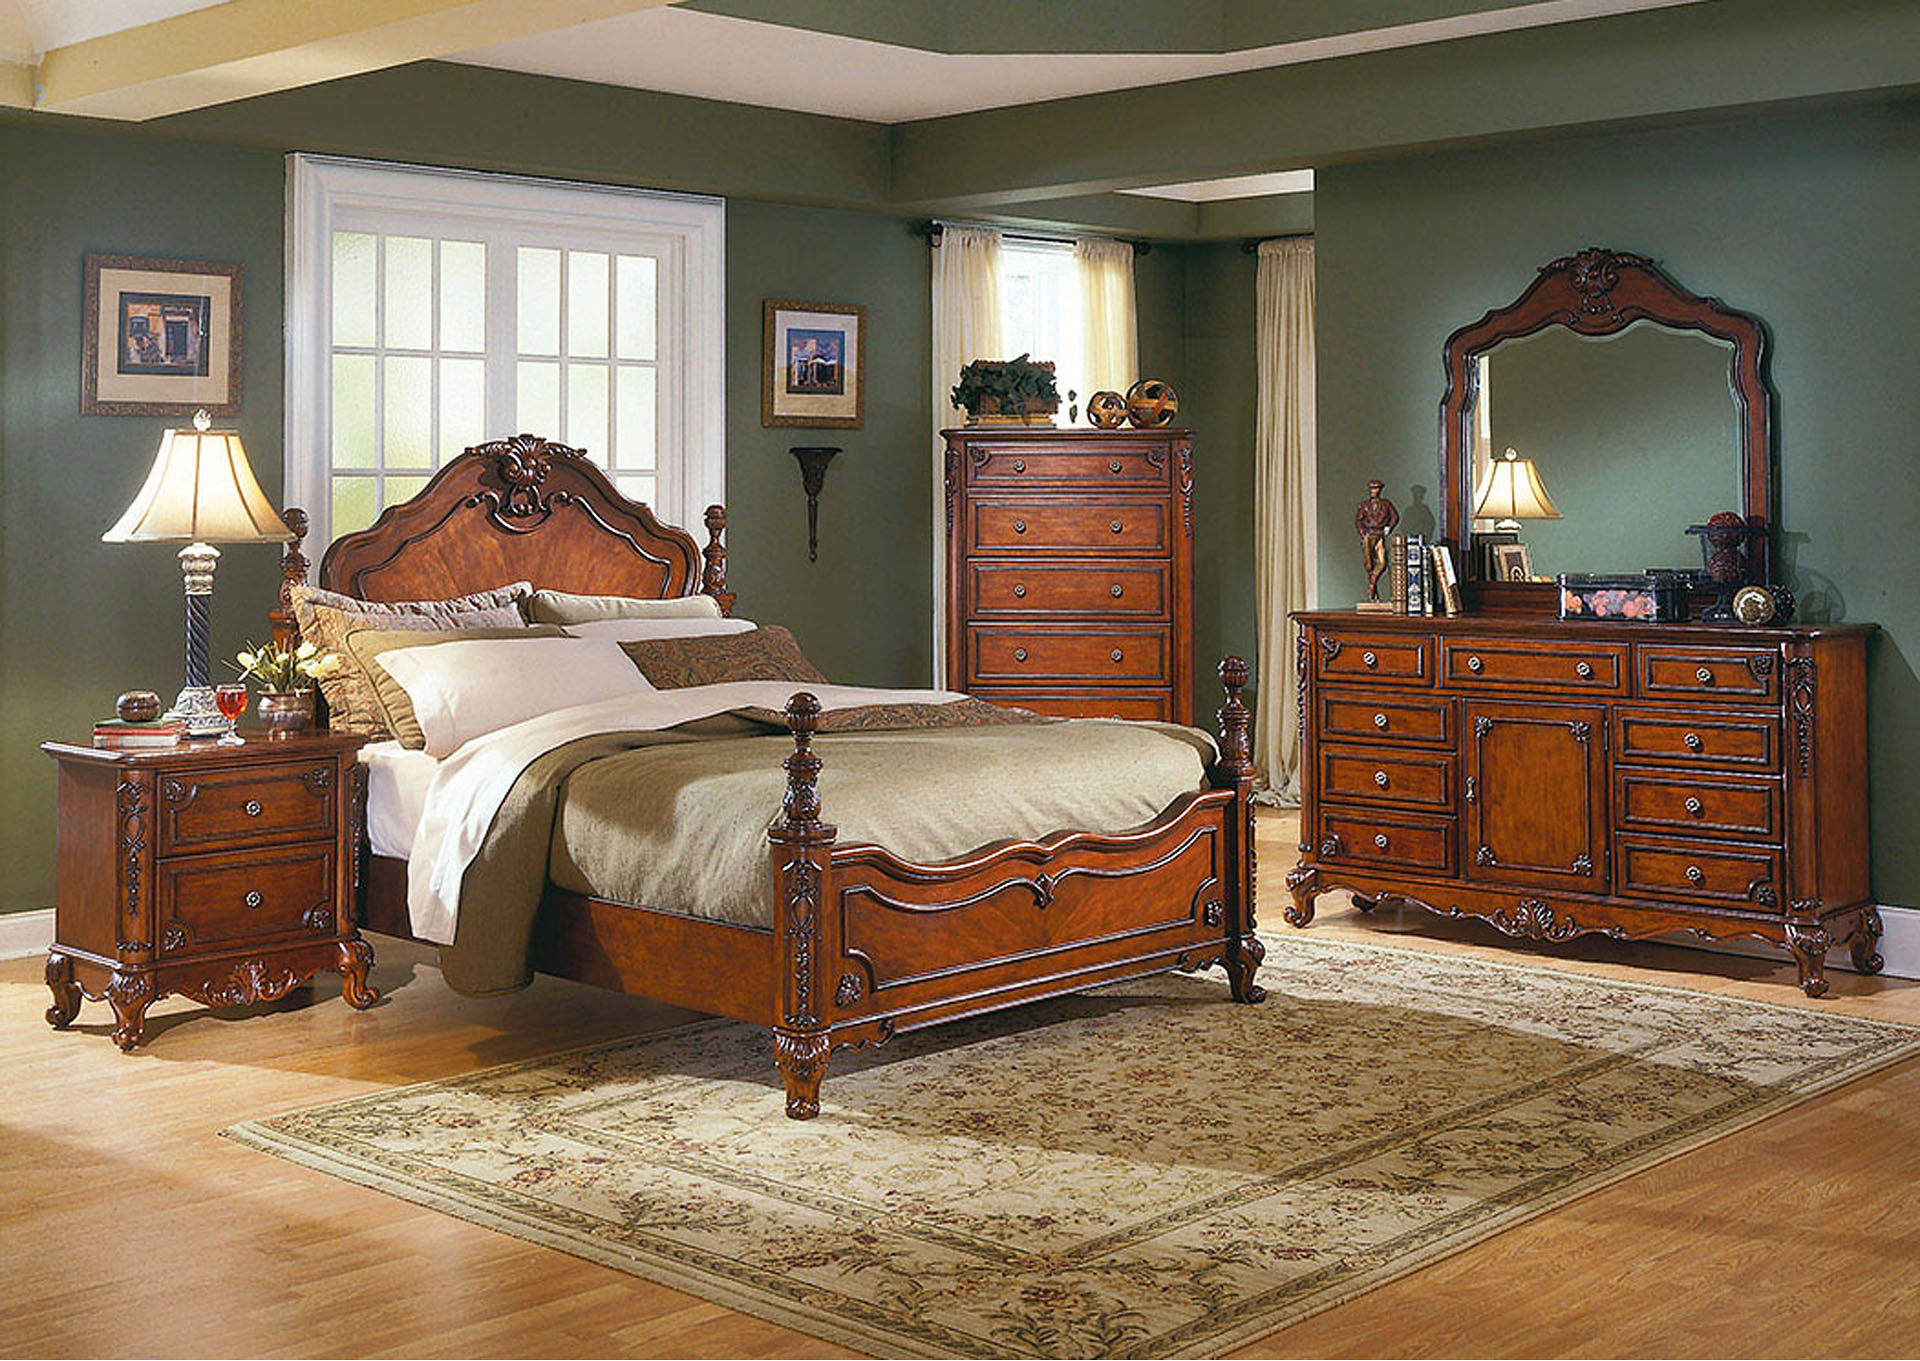 Madaleine Warm Cherry Queen Bed w/ Dresser, Mirror, Drawer Chest and Nightstand,Homelegance